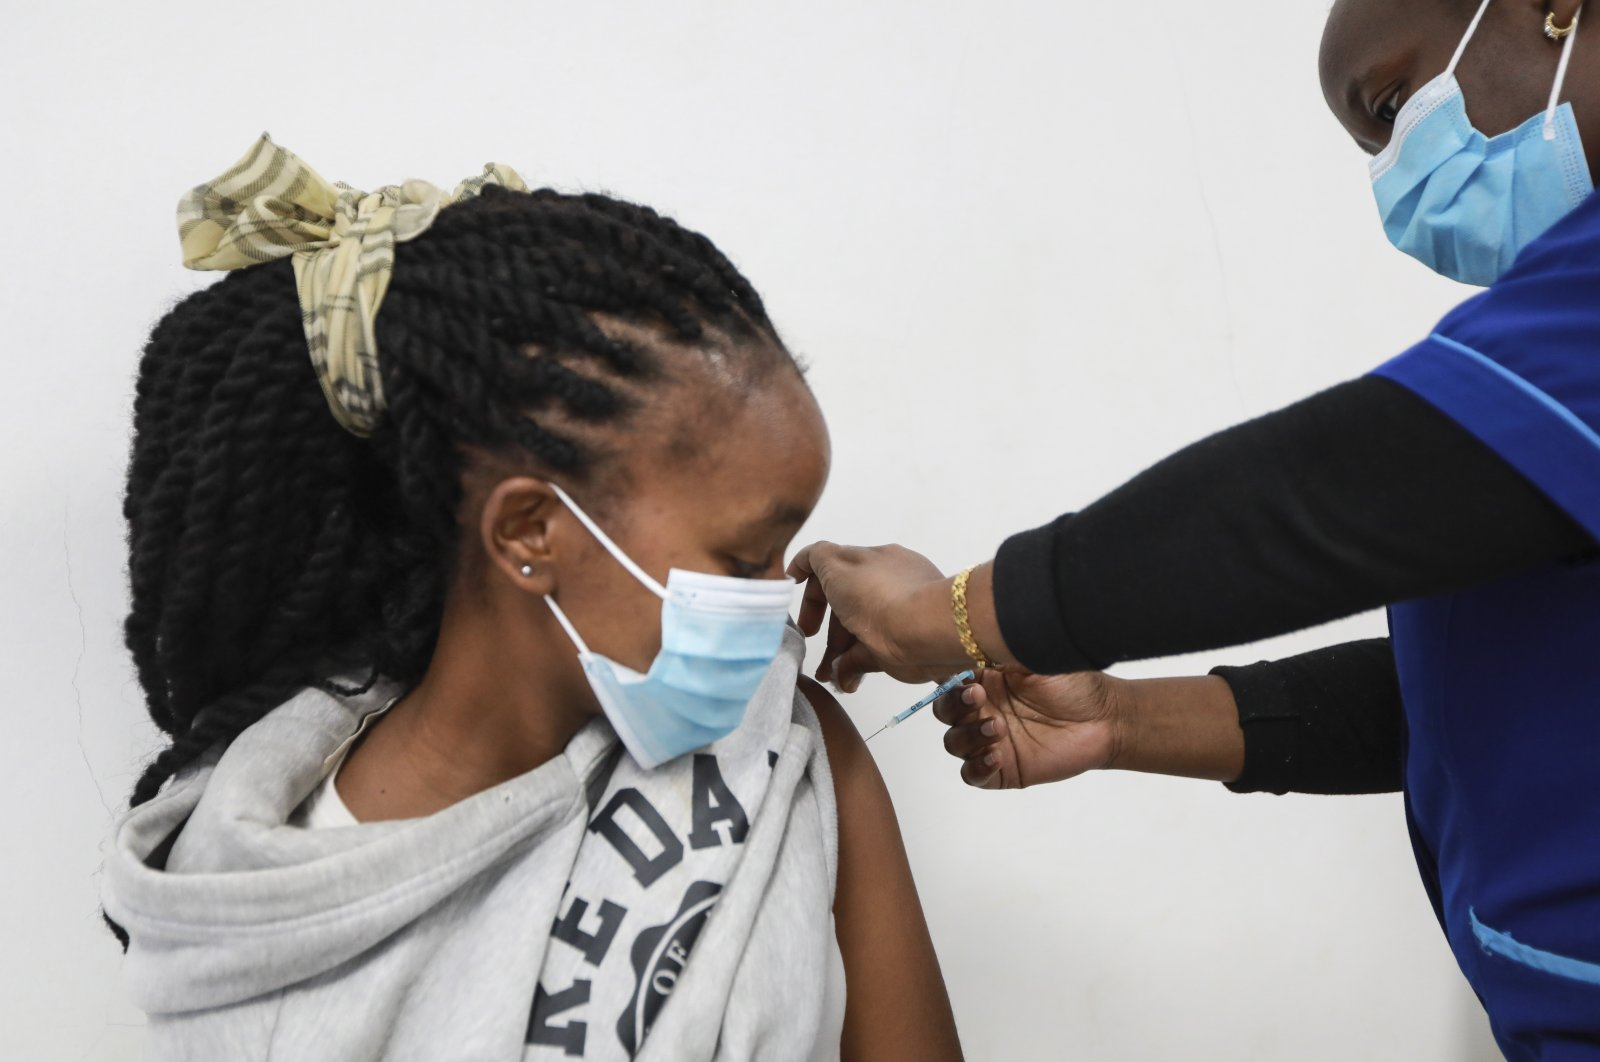 A Kenyan medical staff personnel administers the first dose of the Moderna vaccine against COVID-19 to a woman during a vaccination drive at the Uhai Neema hospital in Nairobi, Kenya, Sept. 7, 2021. (EPA File Photo)